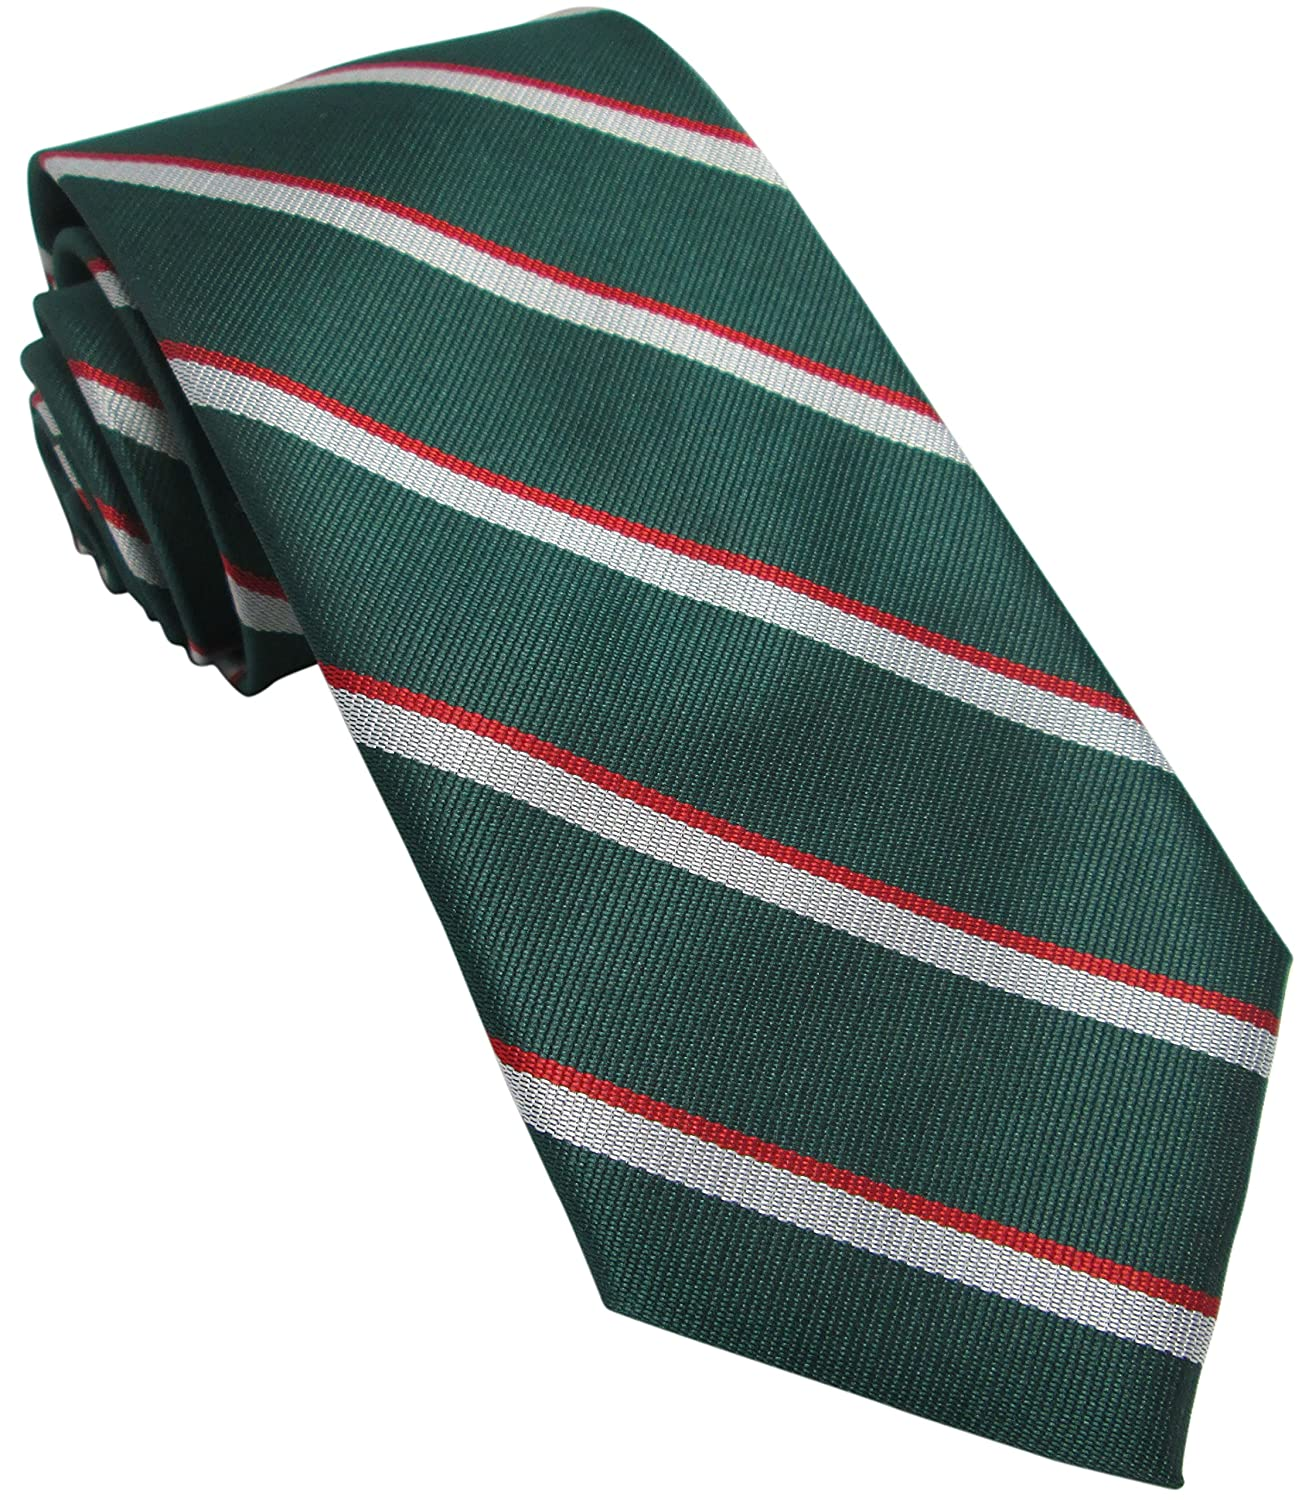 Ties Unlimited Cuerpo de inteligencia Regimental Tie: Amazon.es ...